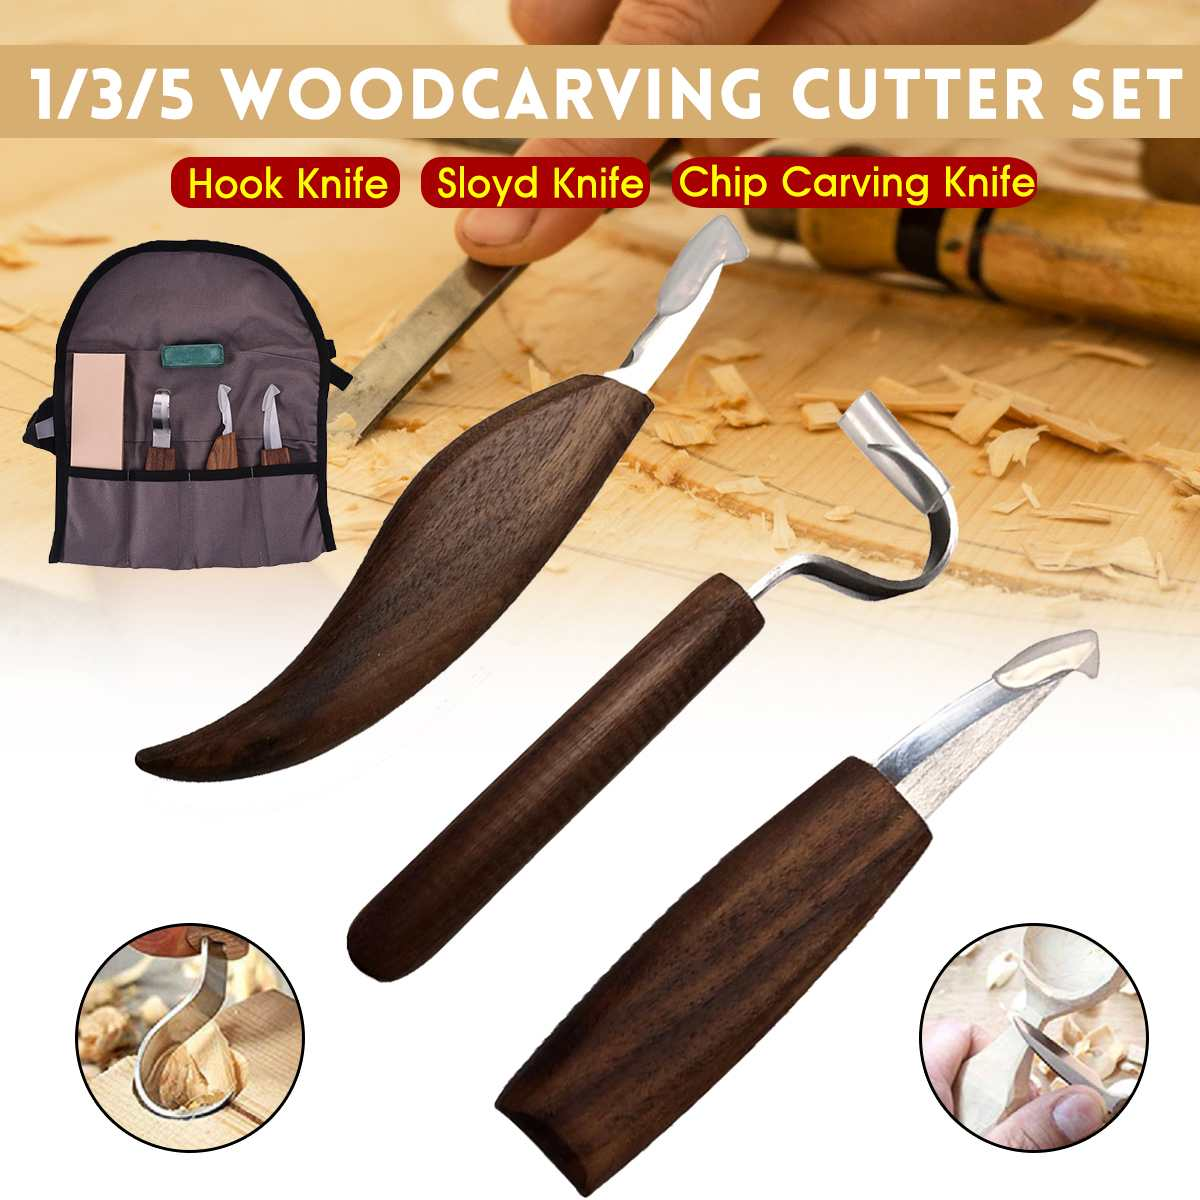 1/3/5Pcs Wood Carving Knife Chisel Woodworking Cutter Hand Tool Set Peeling Woodcarving Sculptural Spoon Carving Woodcut